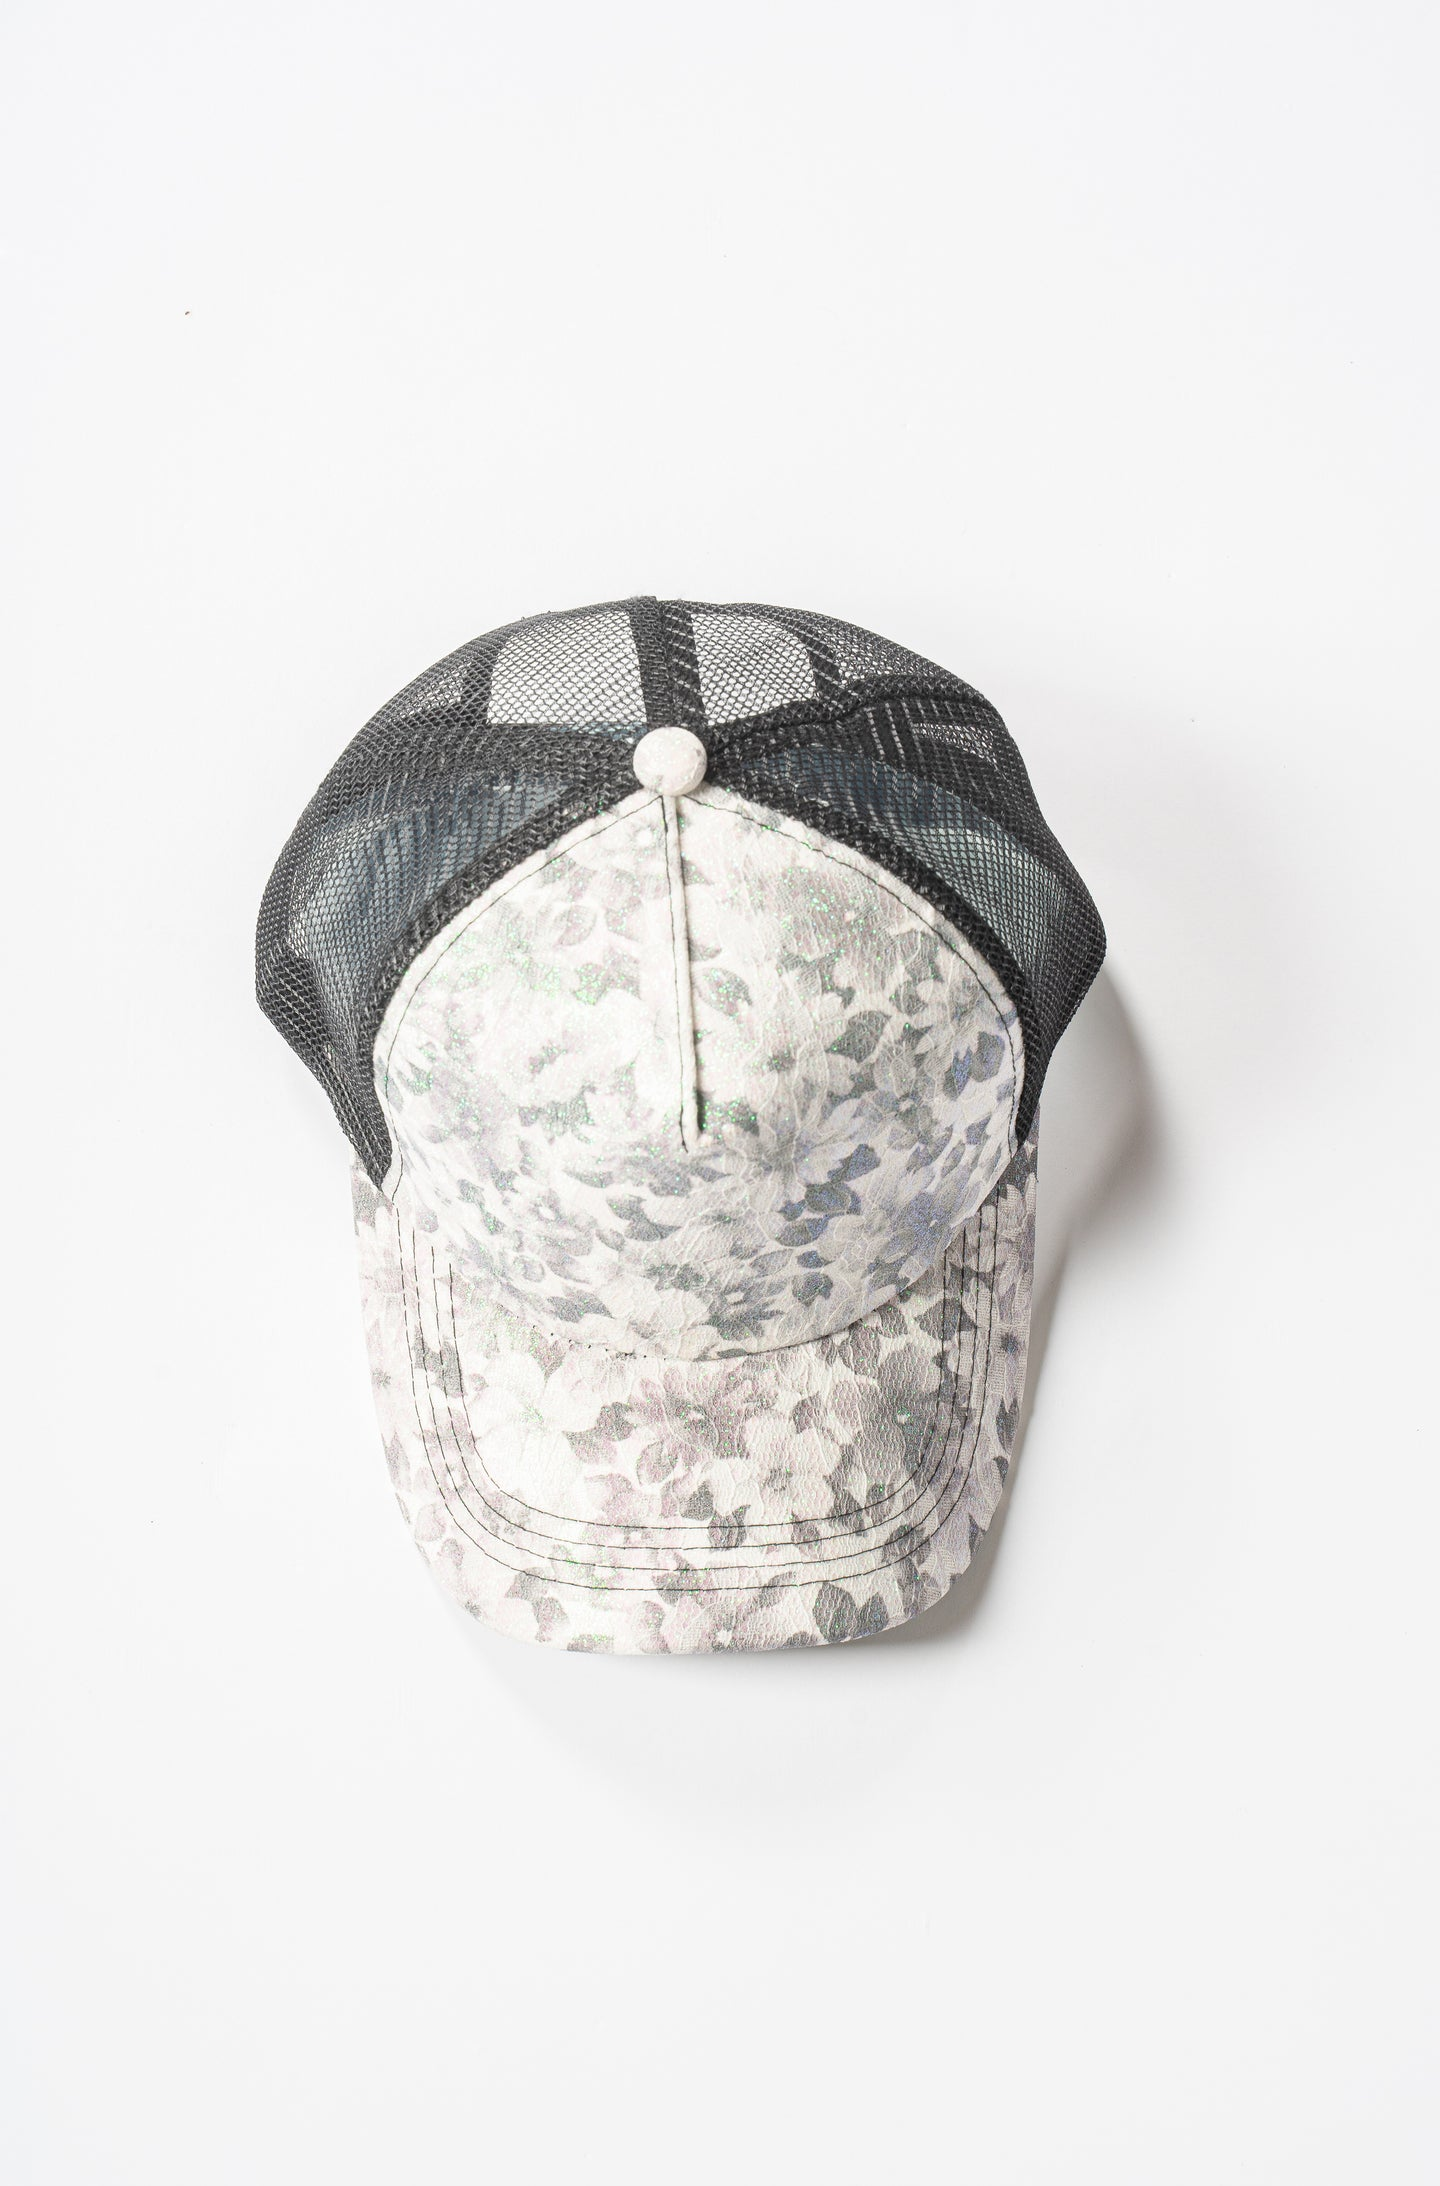 Printed Baseball Cap with Lace and Green Sparkles